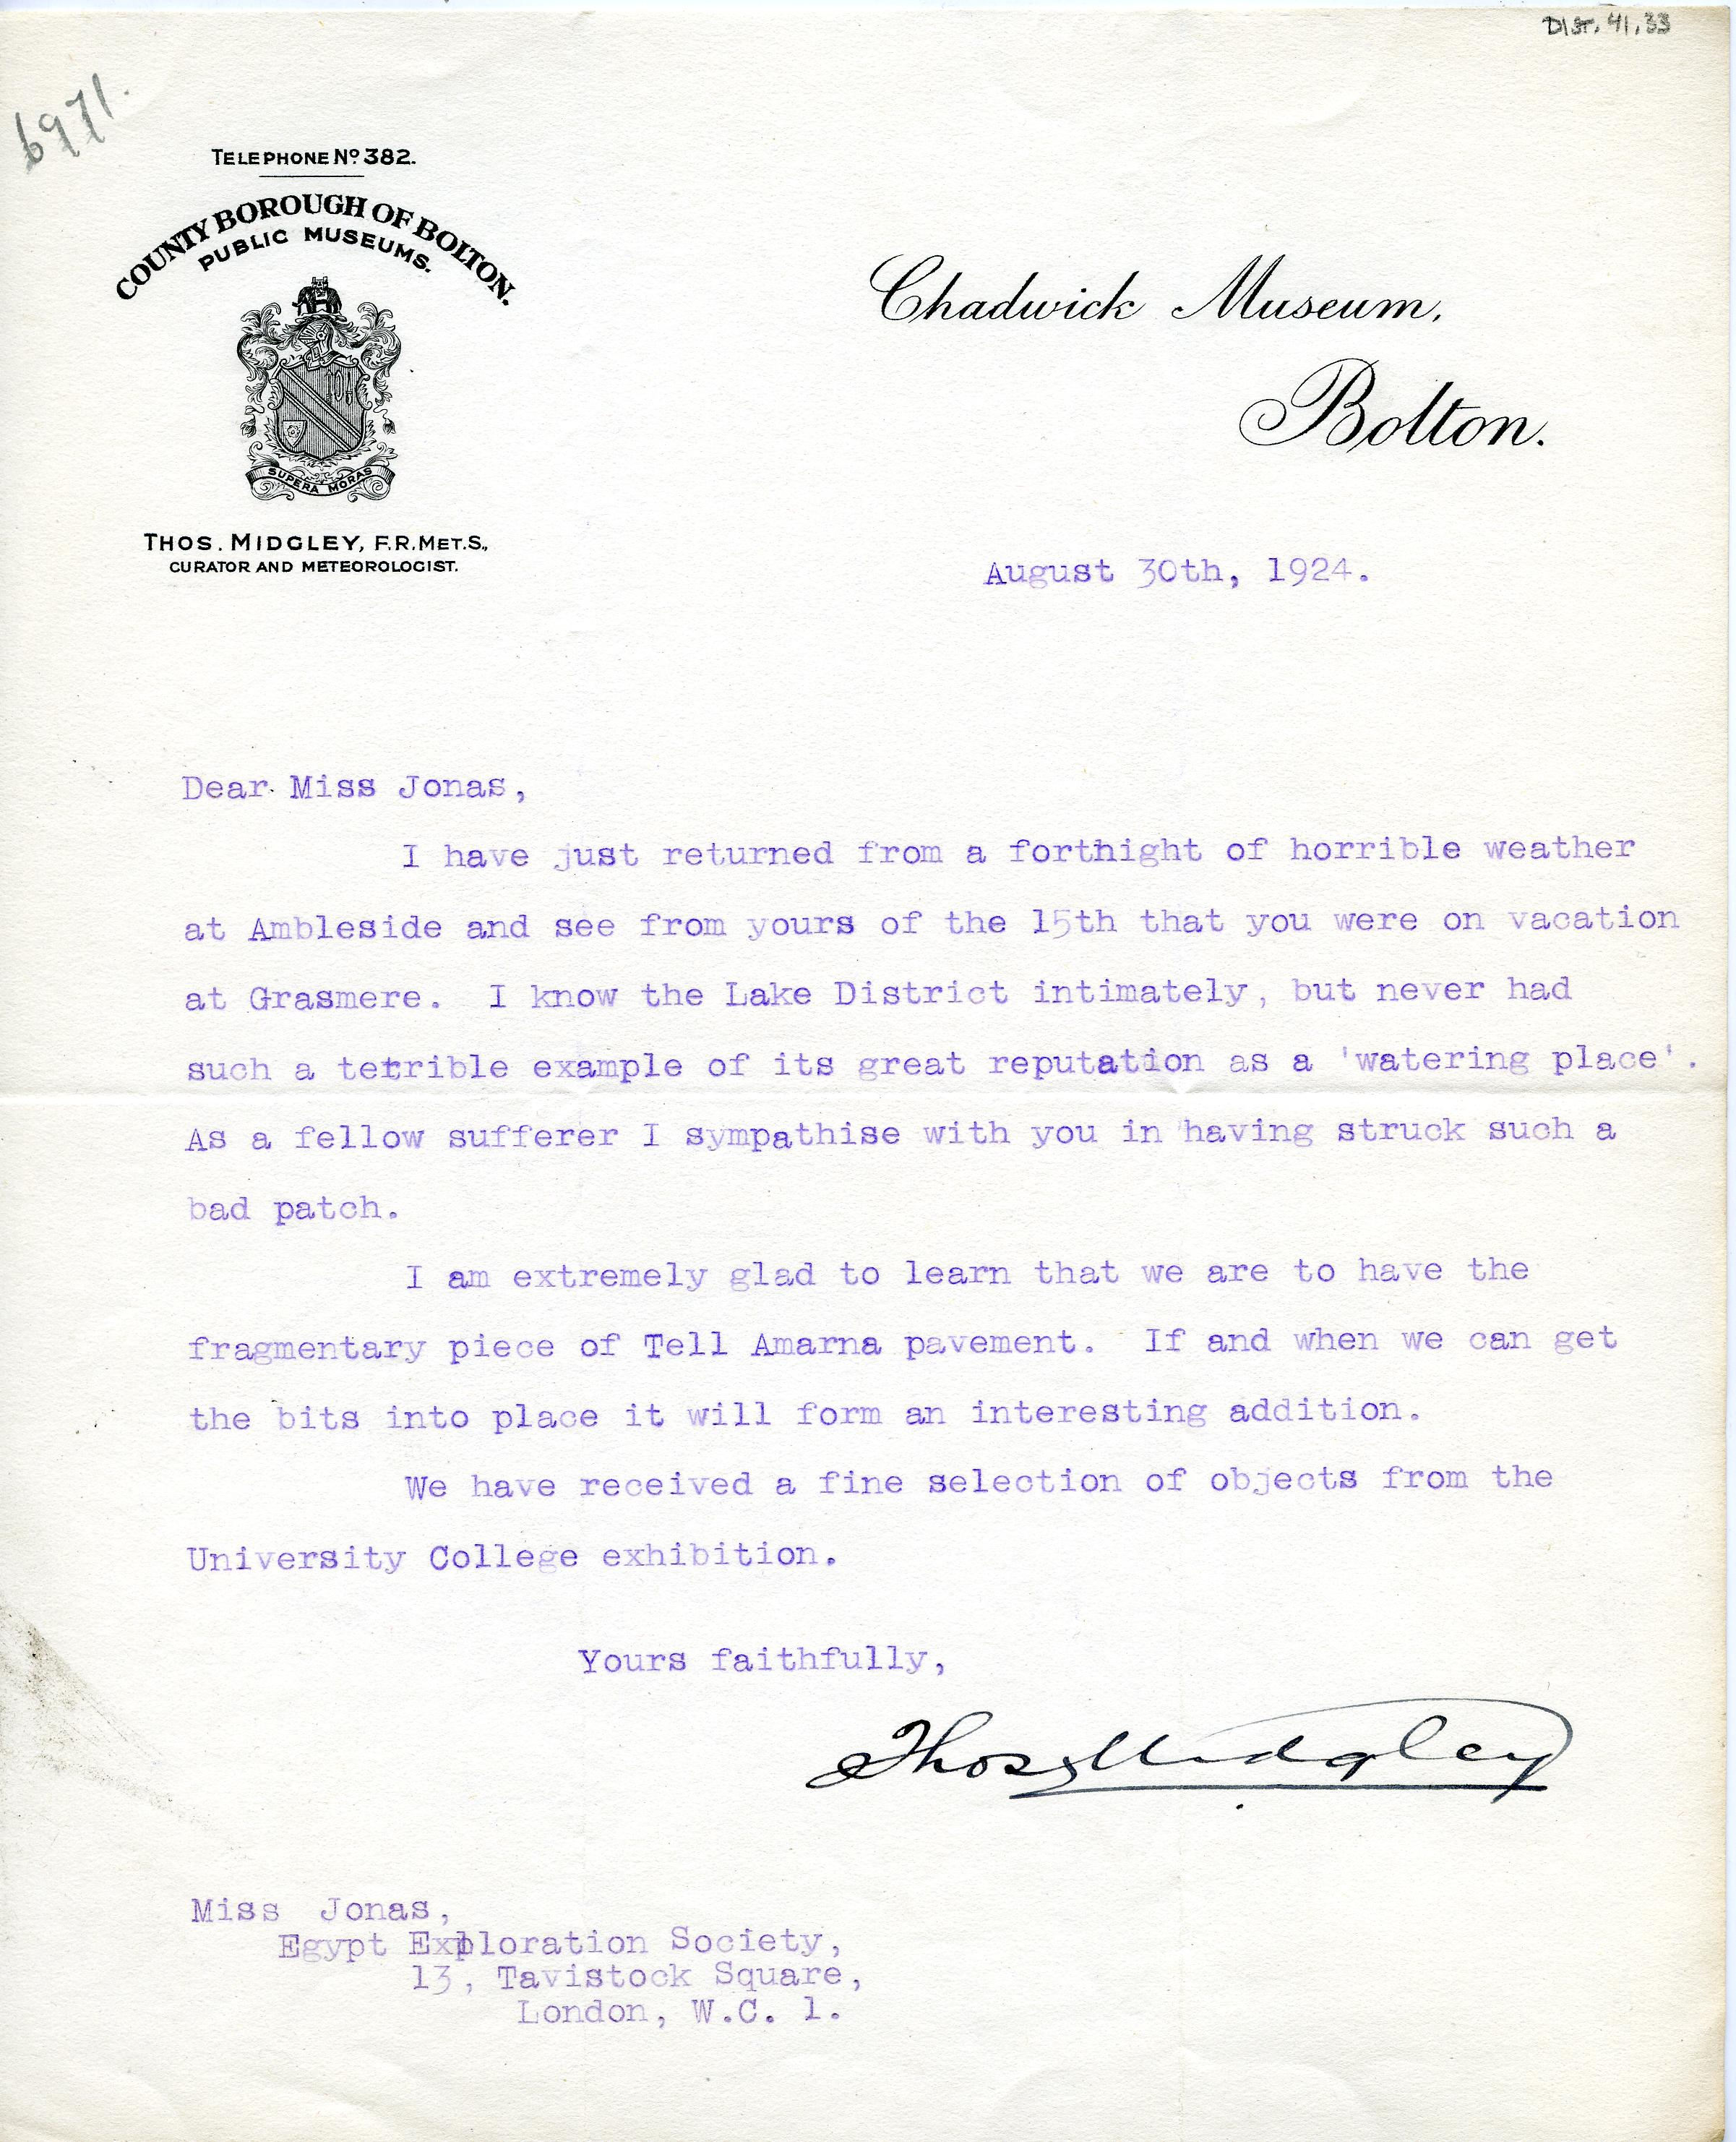 1922-76 Miscellaneous correspondence with museums DIST.41.33